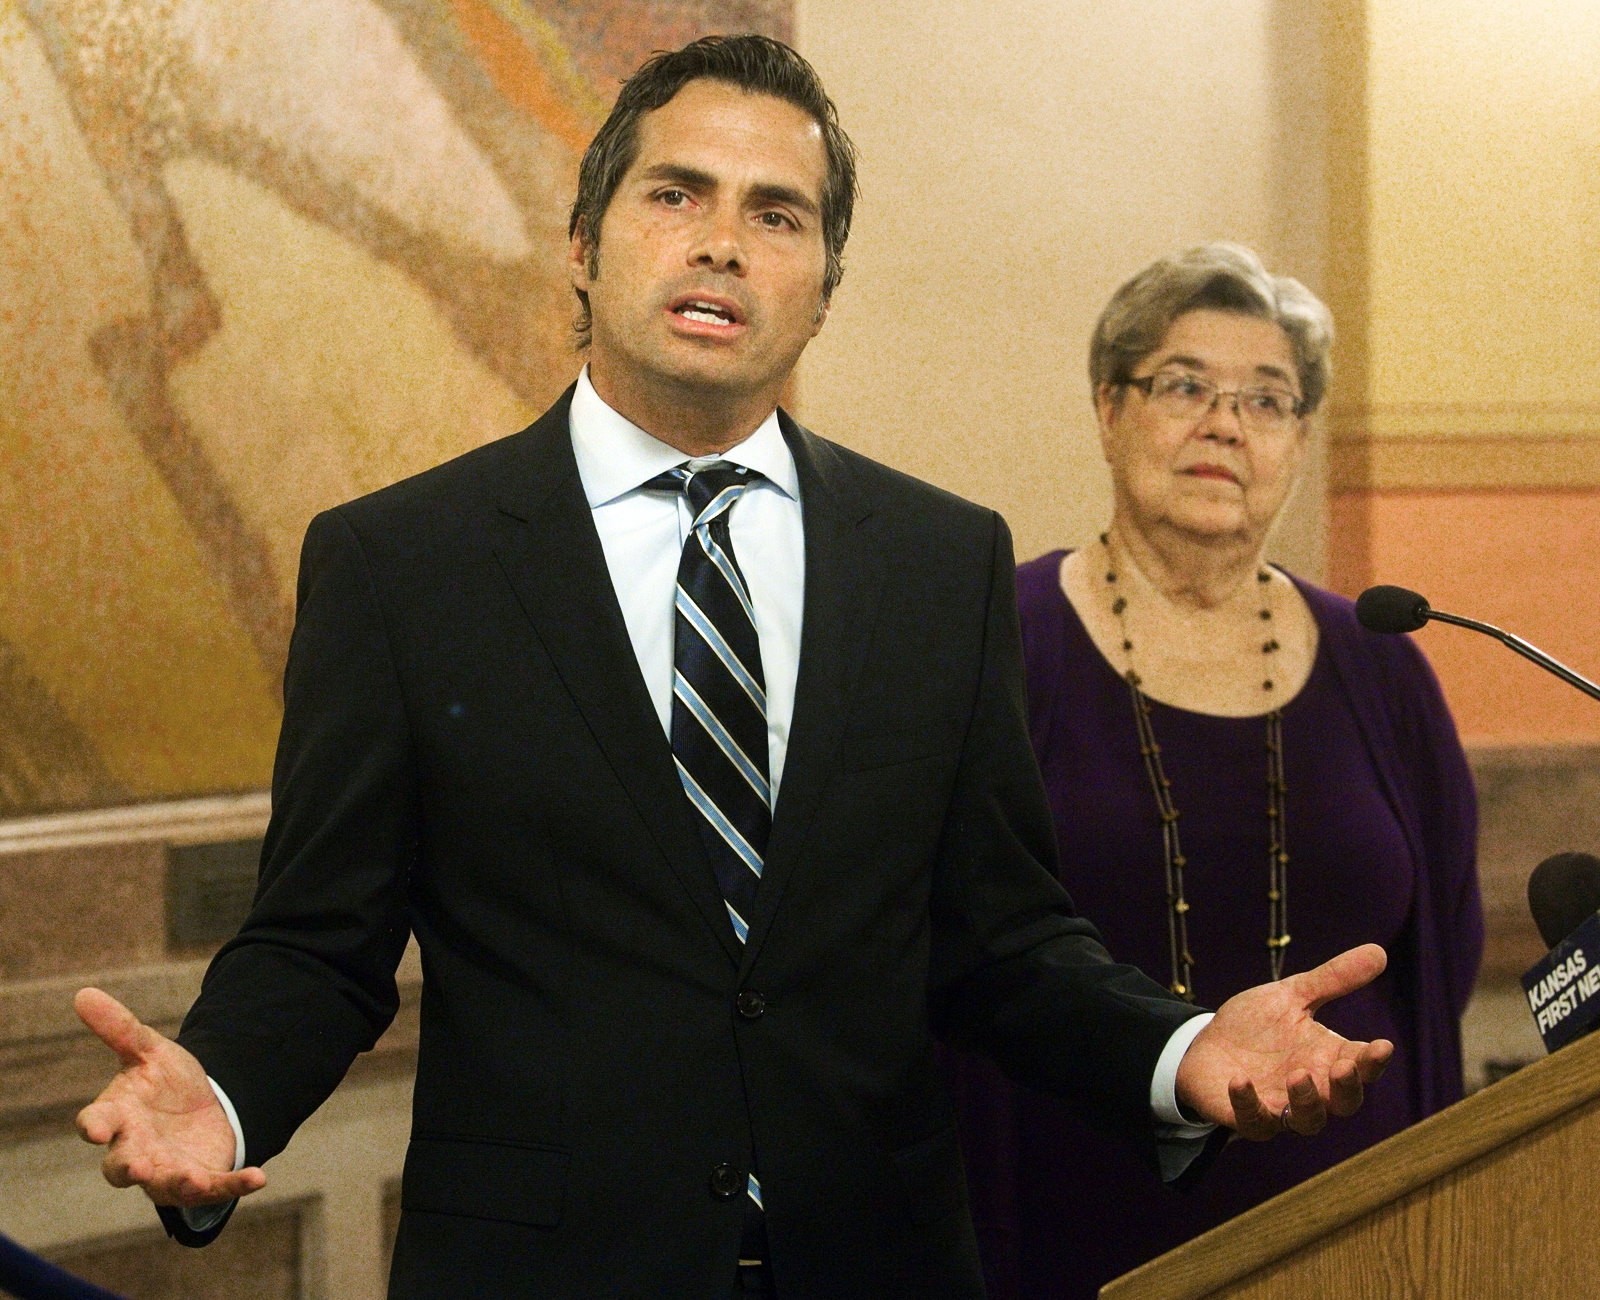 Independent Senate candidate Greg Orman was endorsed by Traditional Republicans for Common Sense on Wednesday over incumbent Republican Pat Roberts and Democratic nominee Chad Taylor, who is leaving the race.